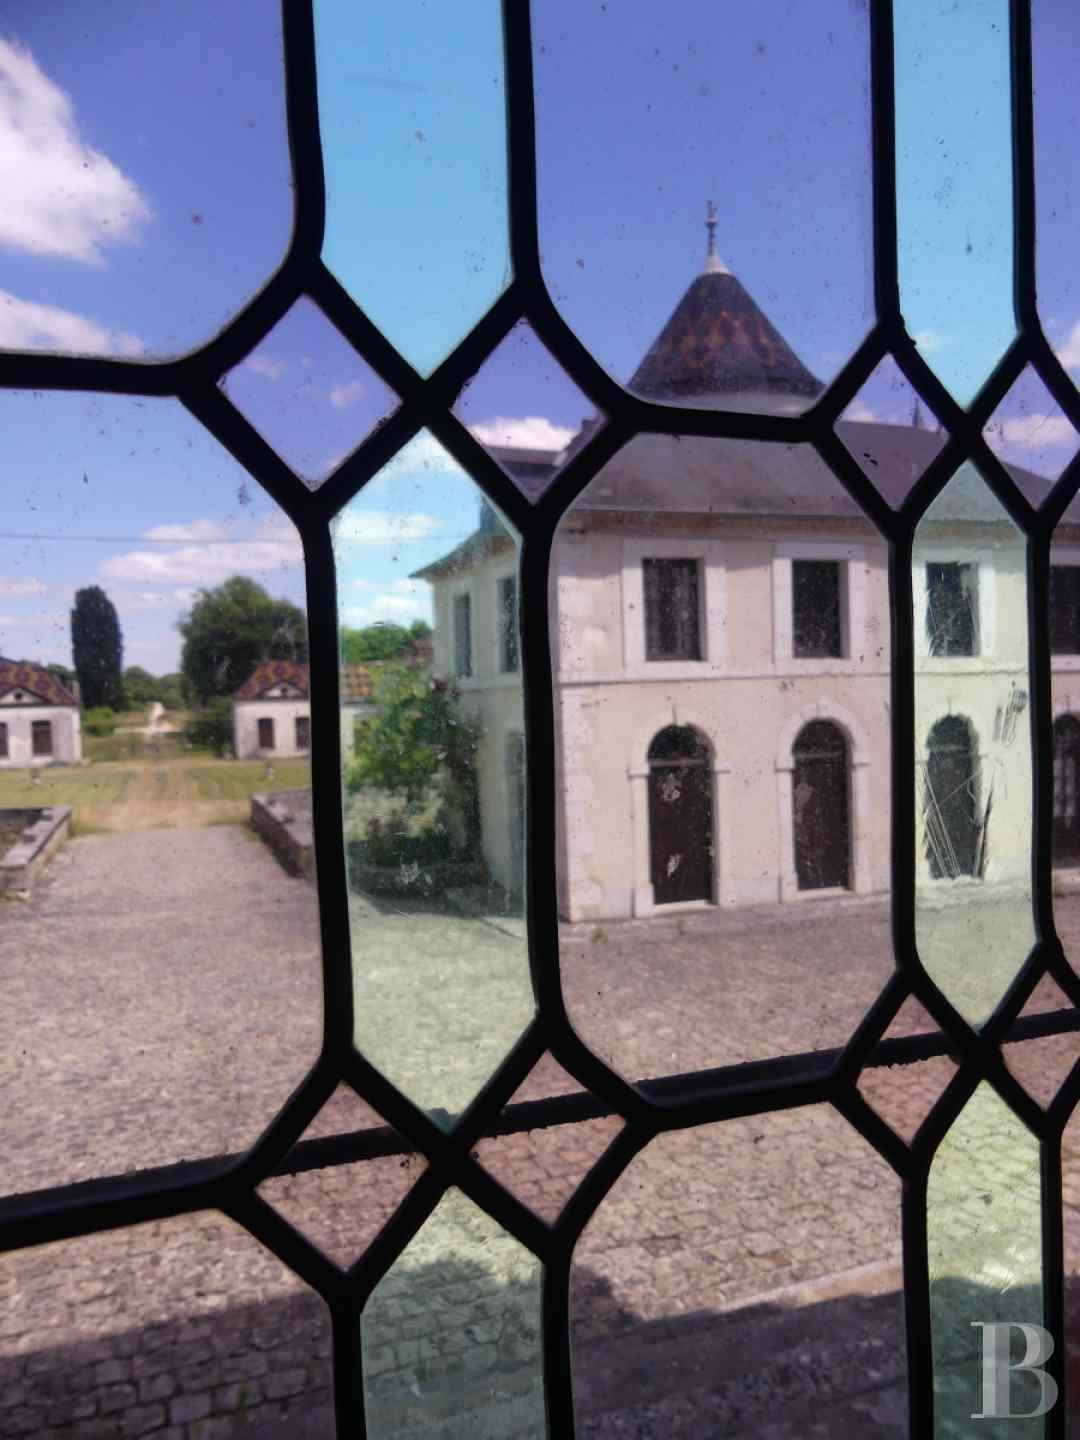 chateaux a vendre bourgogne chateau domaine - 3 zoom